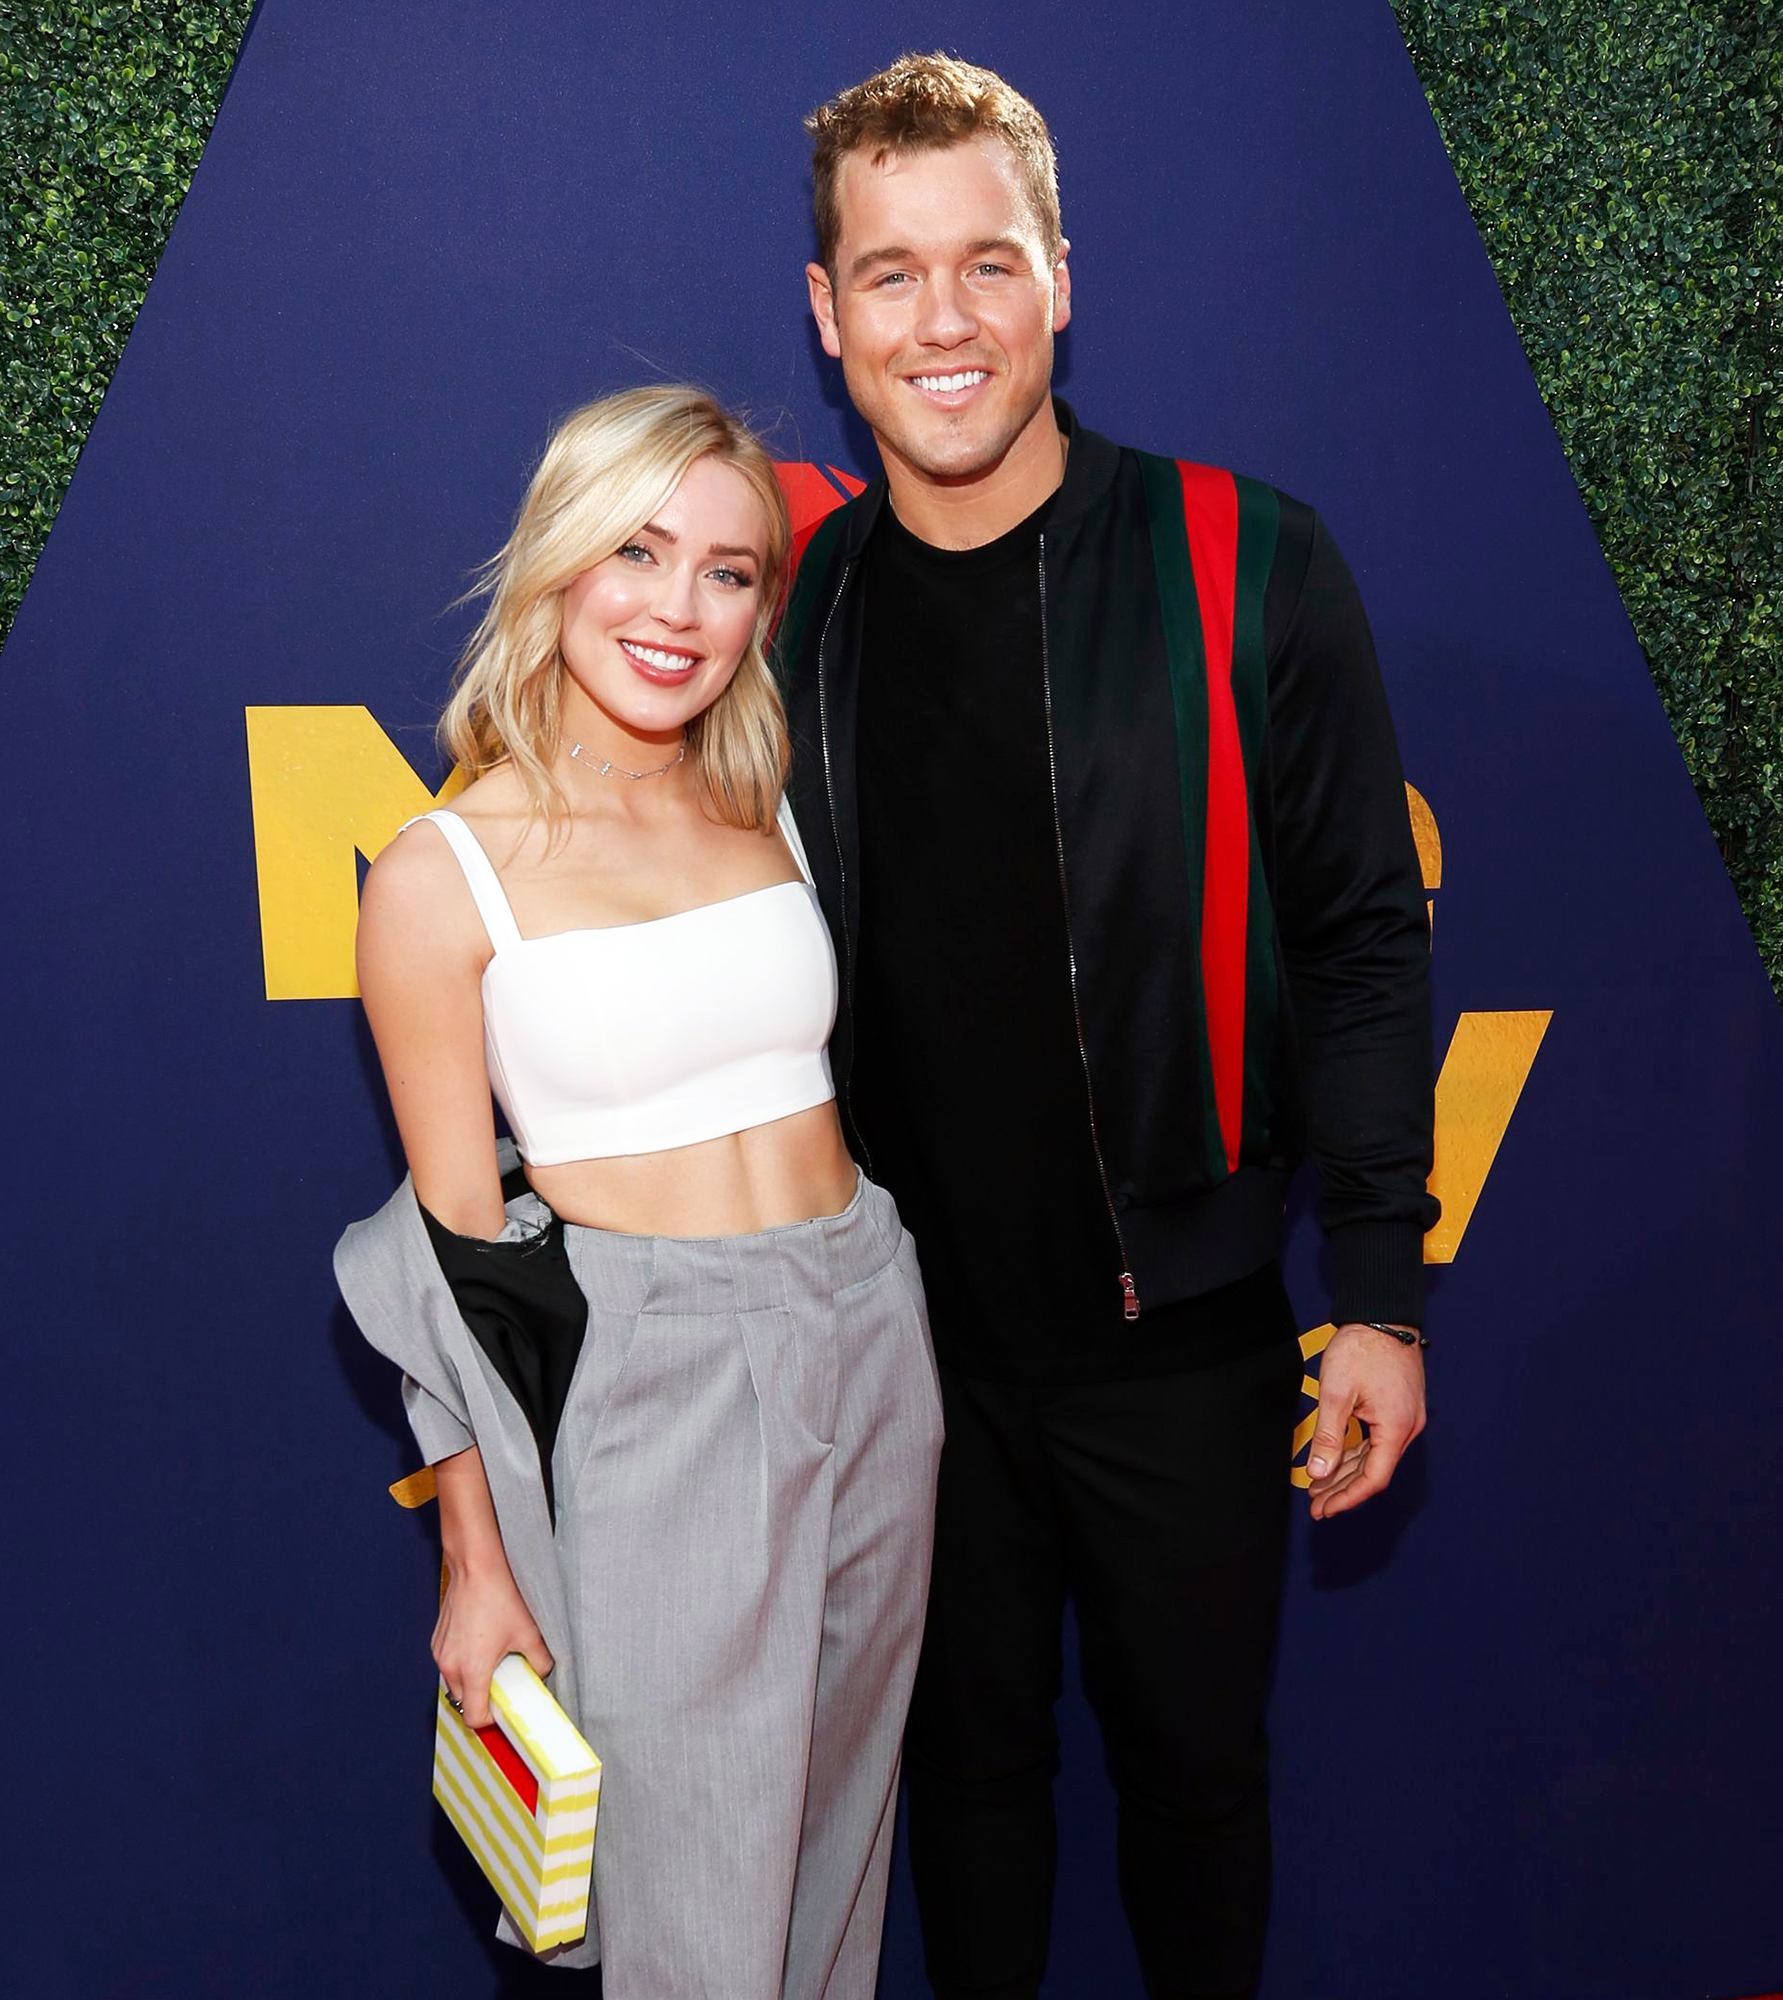 'Bachelor' Alum Colton Underwood Admits He 'Creeped on' Cassie's Pinterest Boards for Proposal Ideas